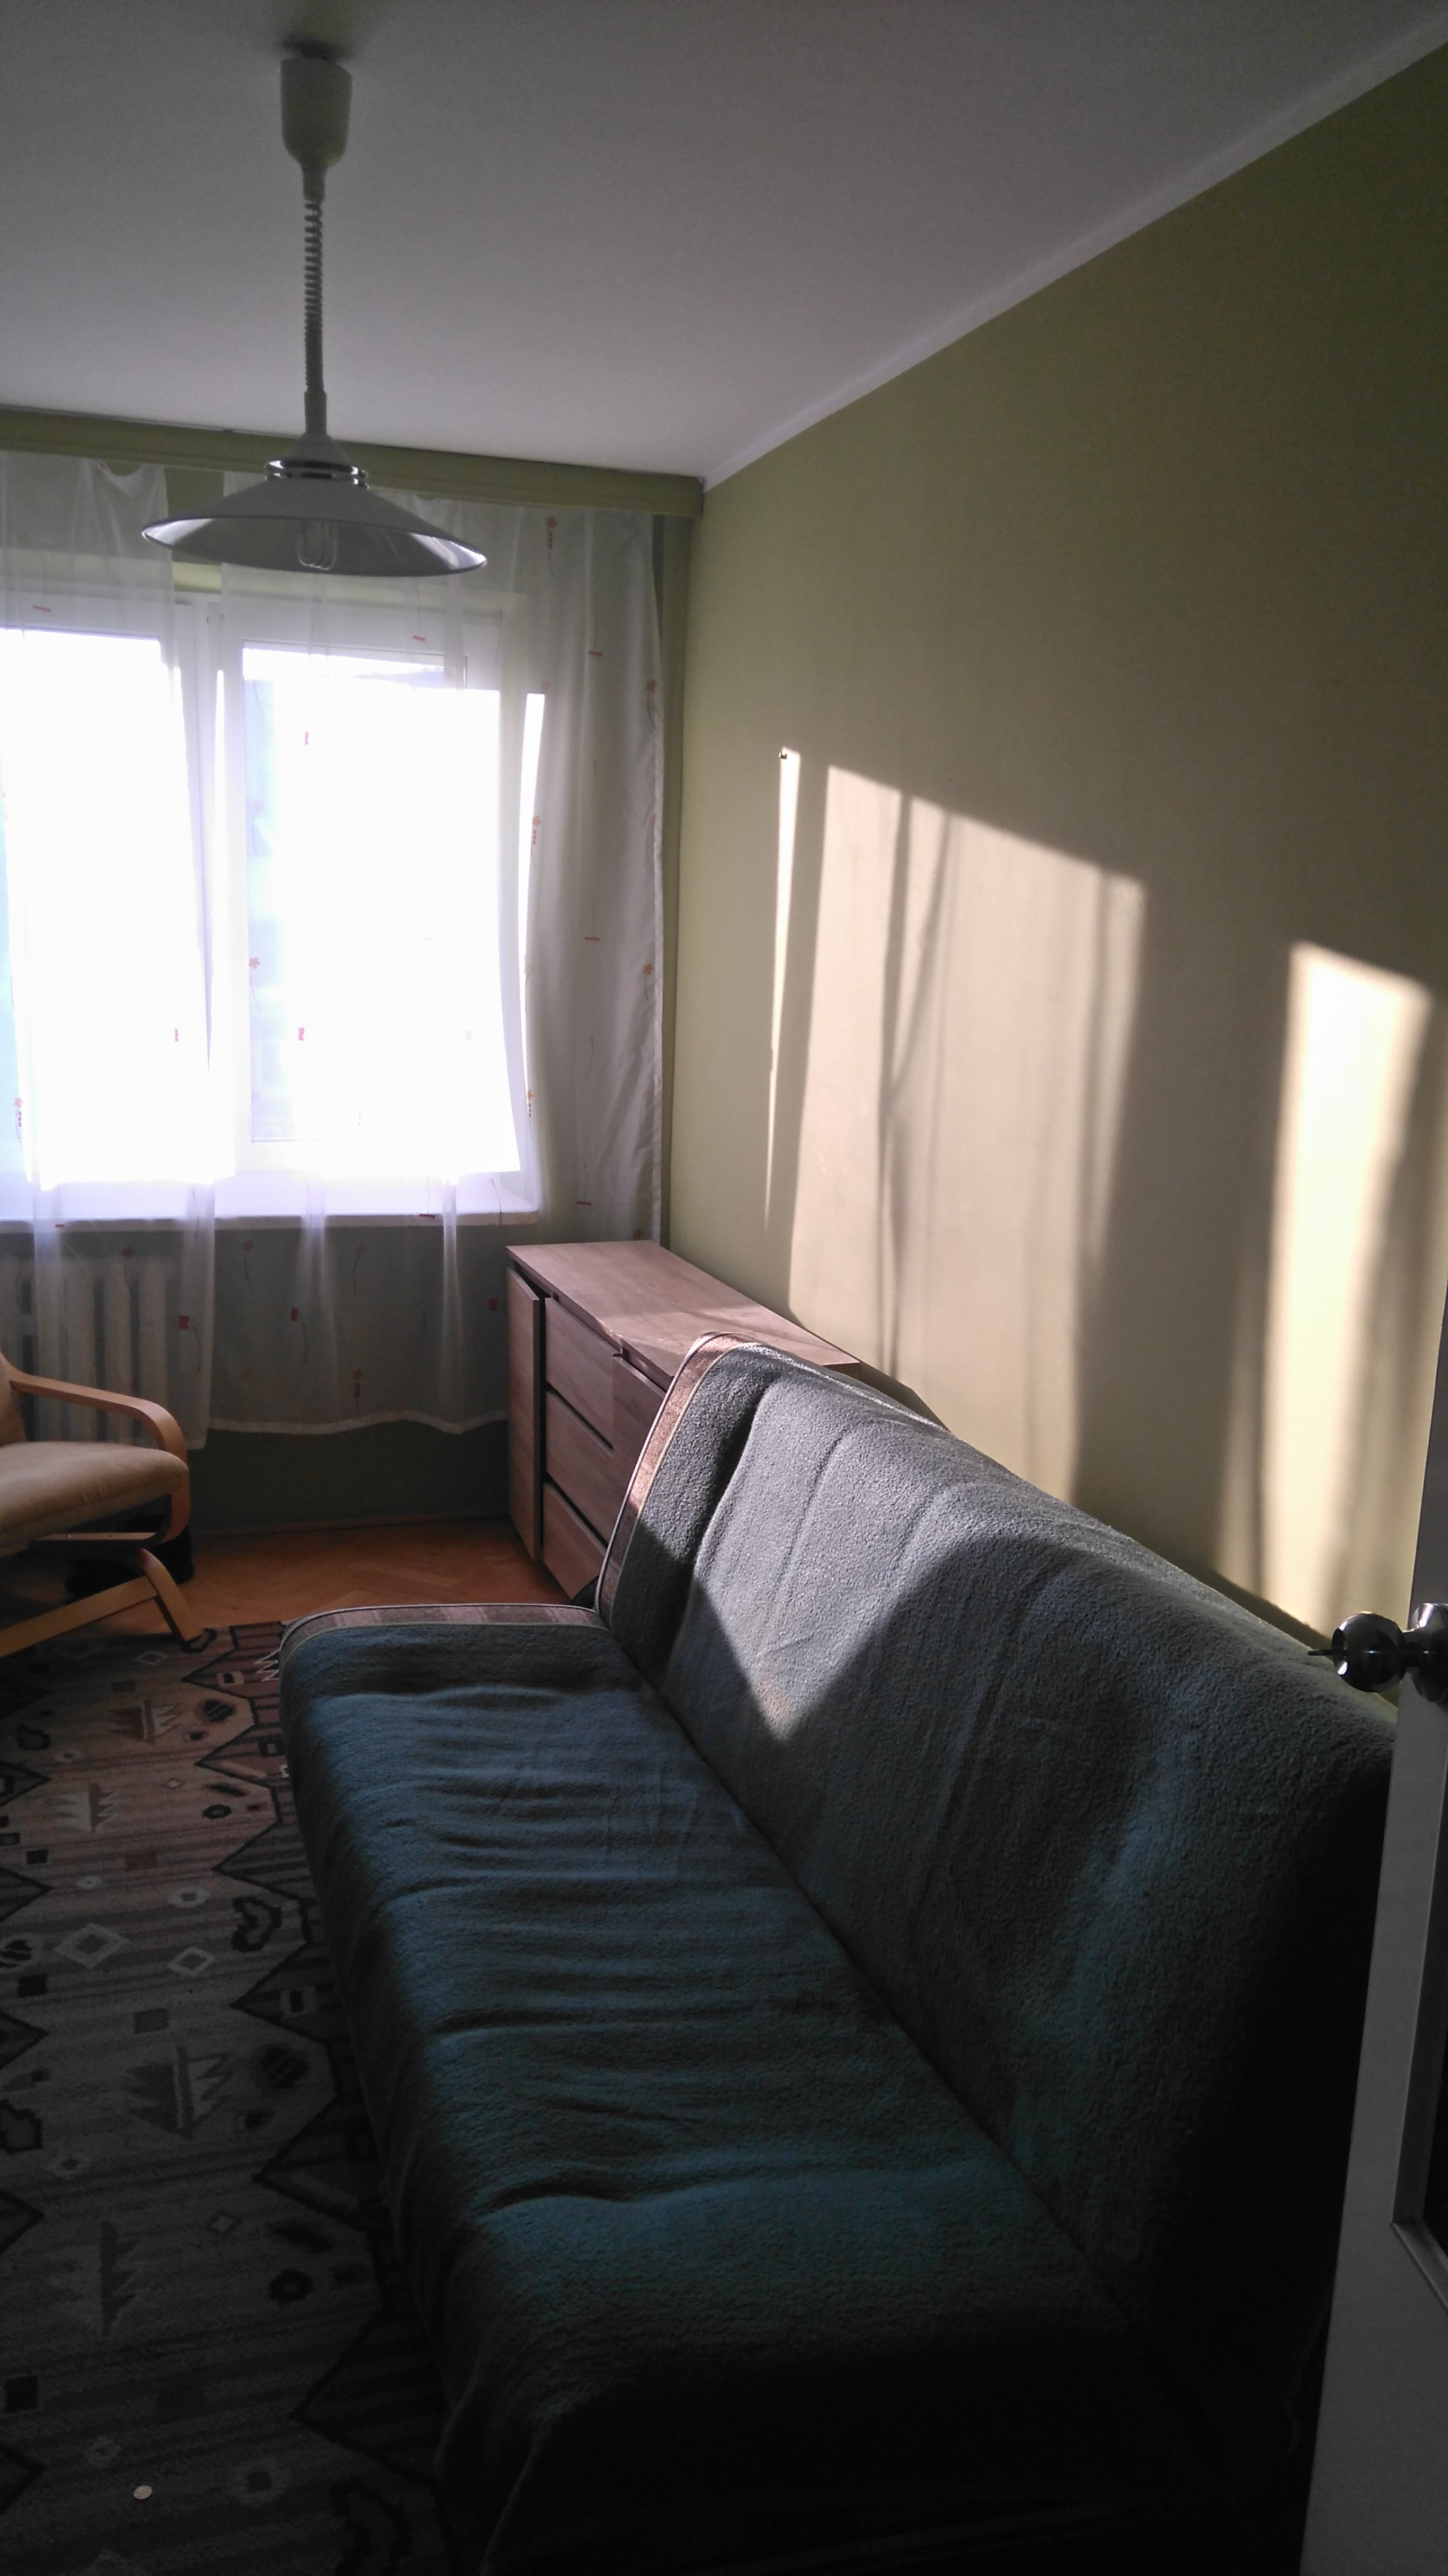 bedroom beds upstairs king brighton rooms view all fdbd images rent a ensuite with room beach